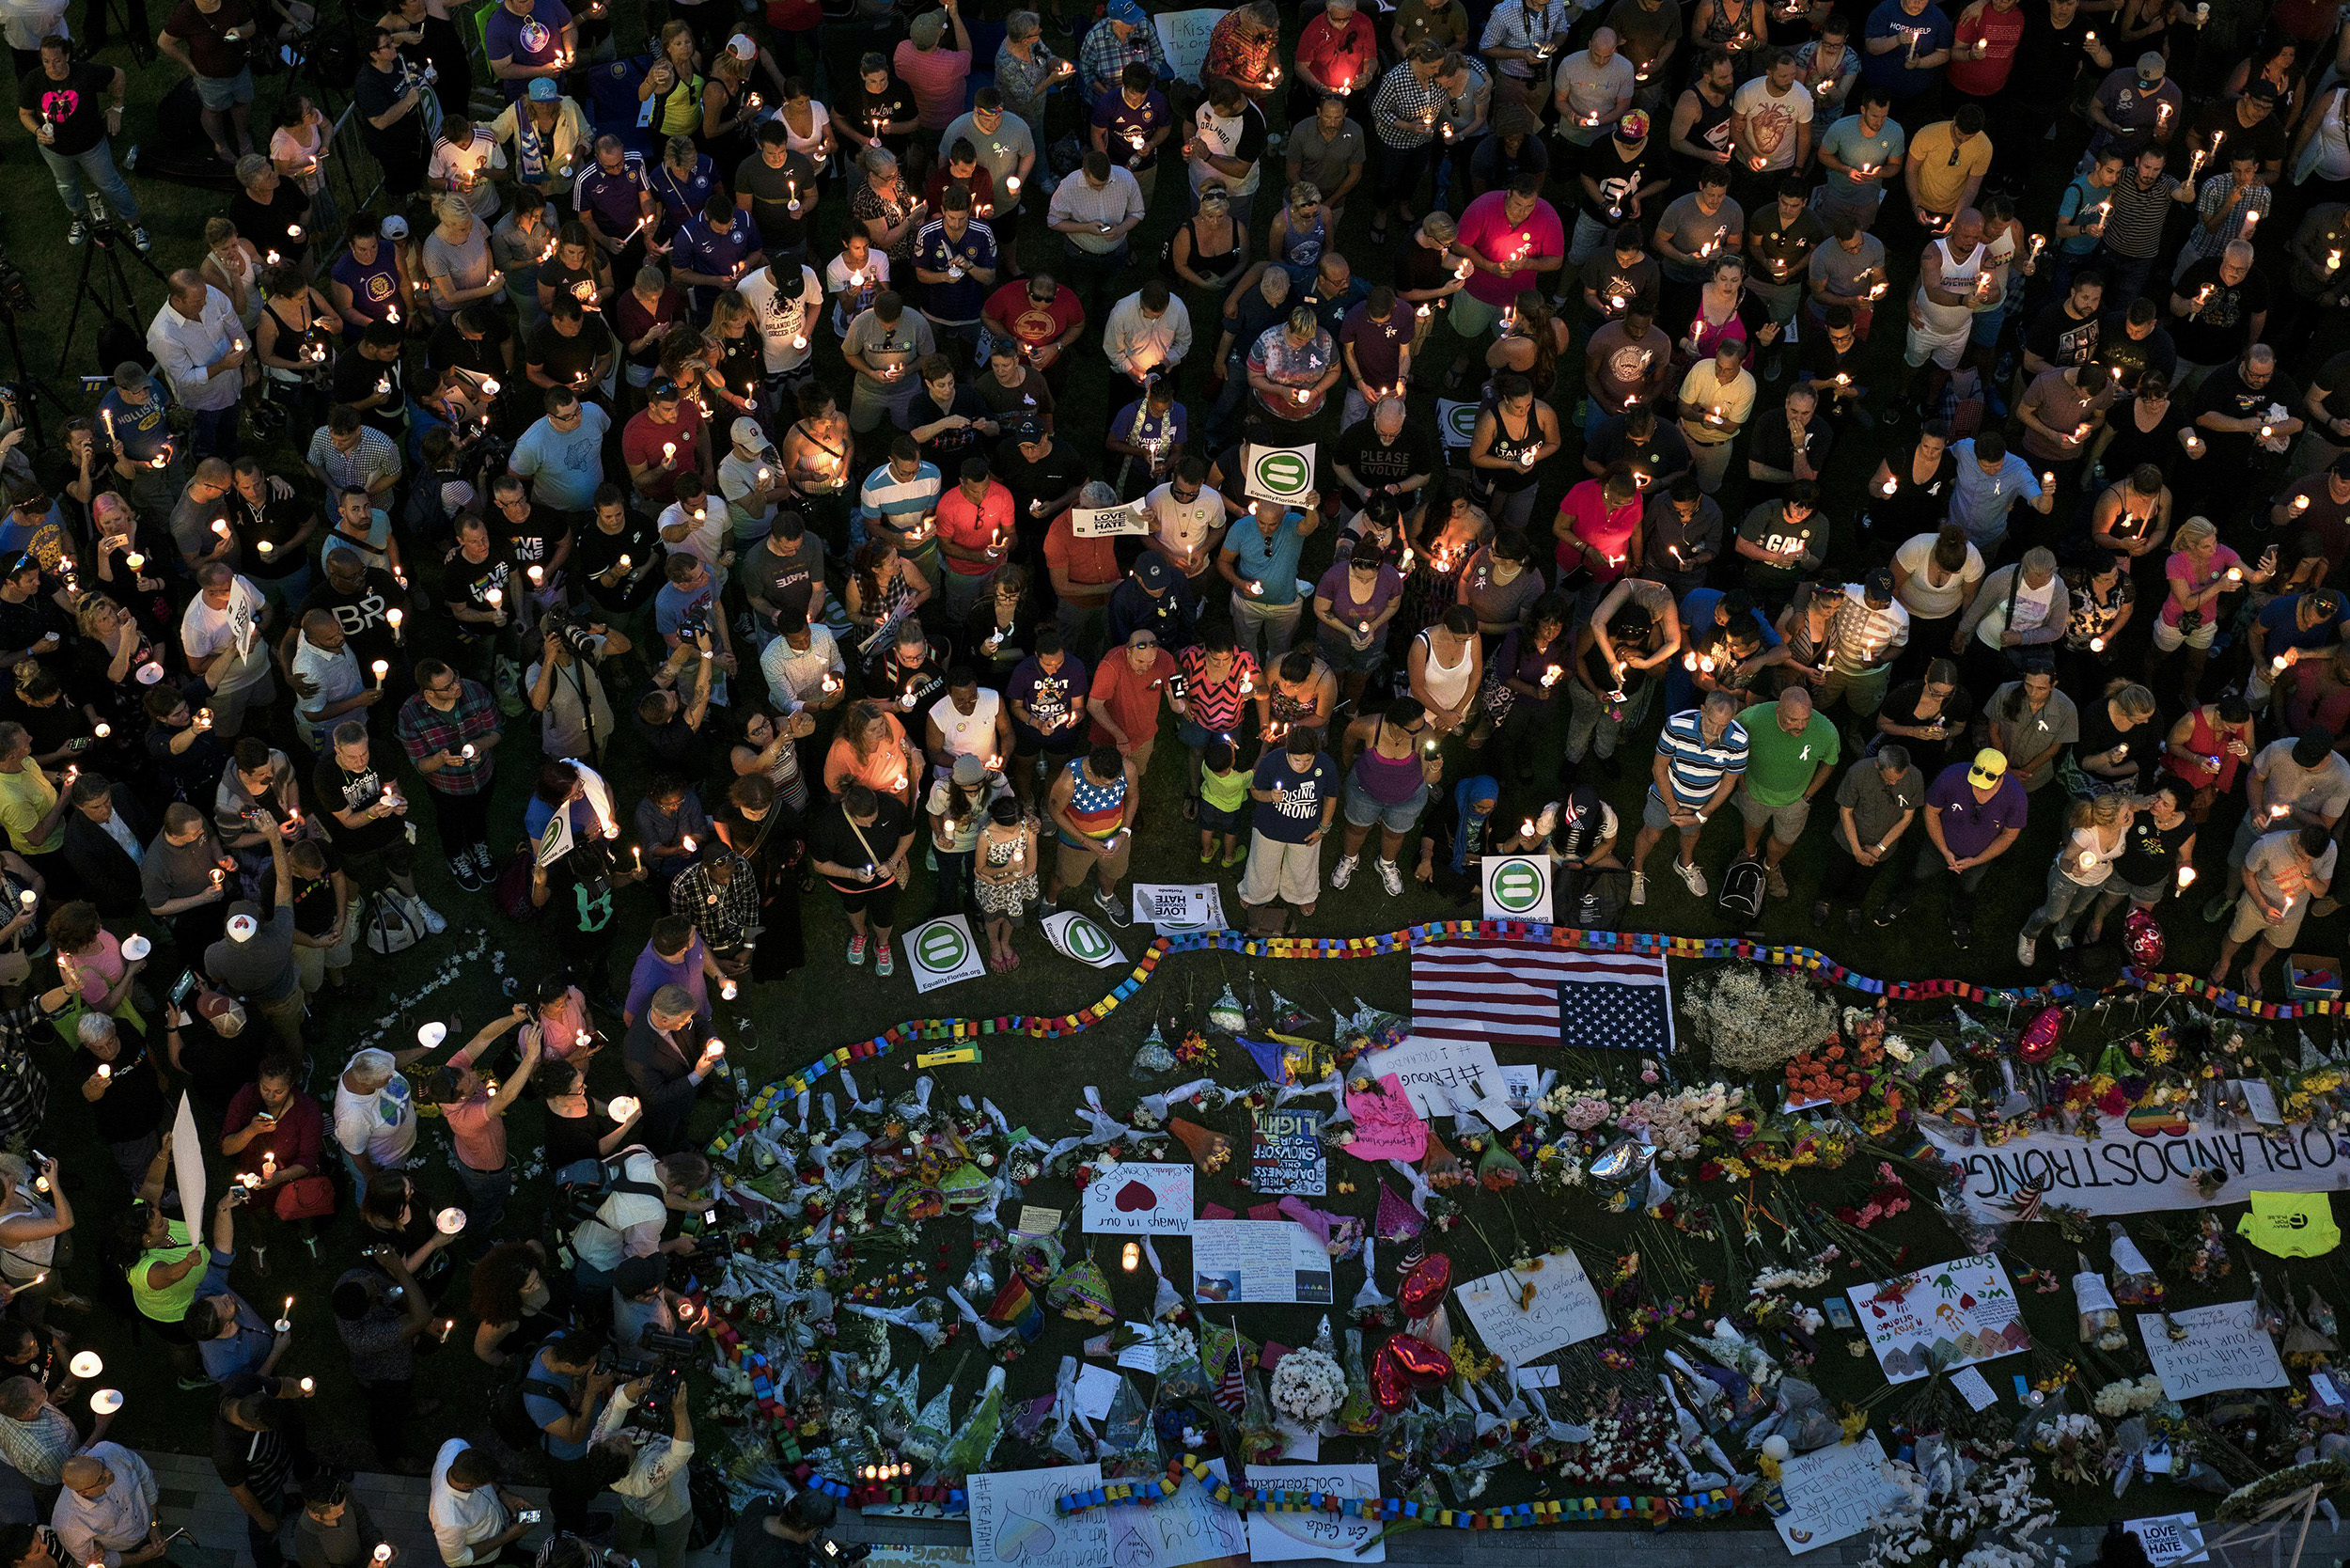 TOPSHOT - Mourners hold candles while observing a moment of silence during a vigil outside the Dr. Phillips Center for the Performing Arts for the mass shooting victims at the Pulse nightclub June 13, 2016 in Orlando, Florida.The American gunman who launched a murderous assault on a gay nightclub in Orlando was radicalized by Islamist propaganda, officials said Monday, as they grappled with the worst terror attack on US soil since 9/11. / AFP / Brendan Smialowski (Photo credit should read BRENDAN SMIALOWSKI/AFP/Getty Images)